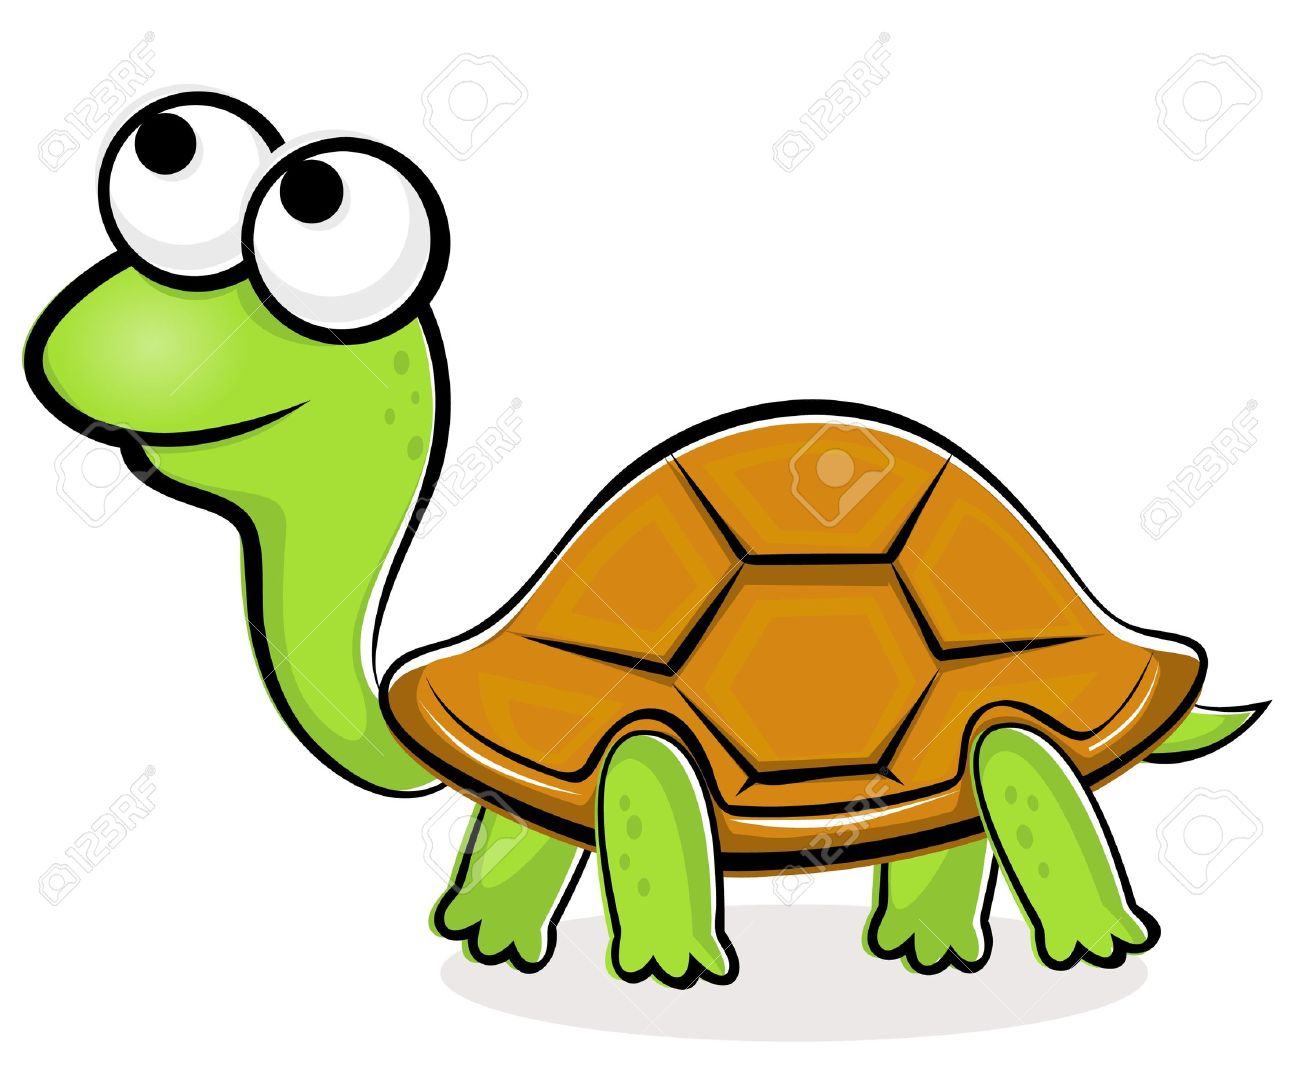 1300x1083 Image result for cartoon tortoise Swipe file week 6 Keevin Berry